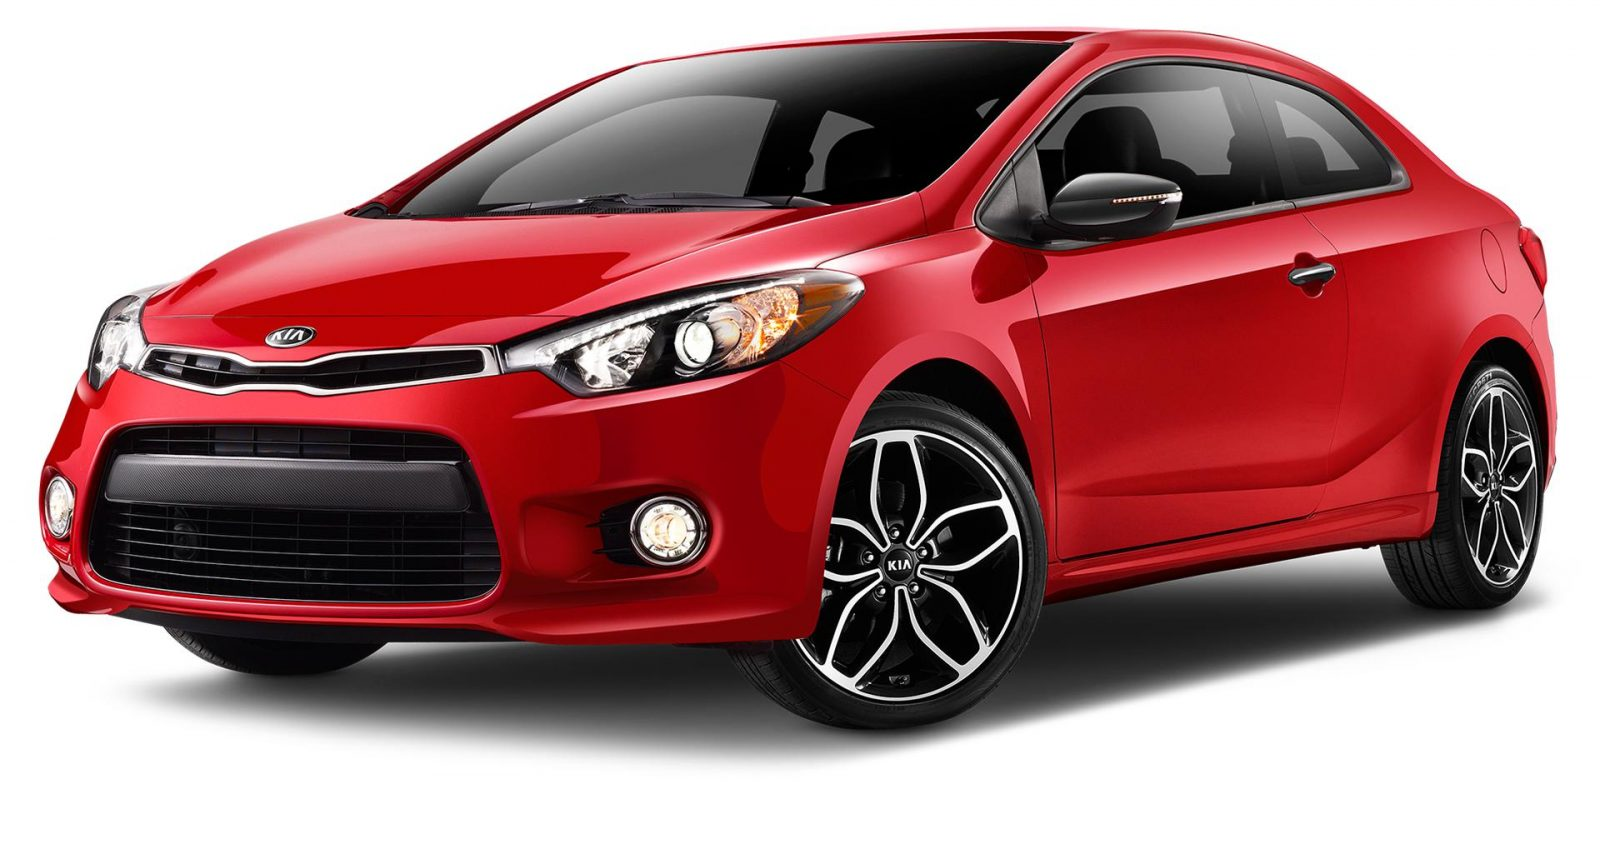 2014 kia forte koup spooling up new turbo power for slinky 2 door. Black Bedroom Furniture Sets. Home Design Ideas